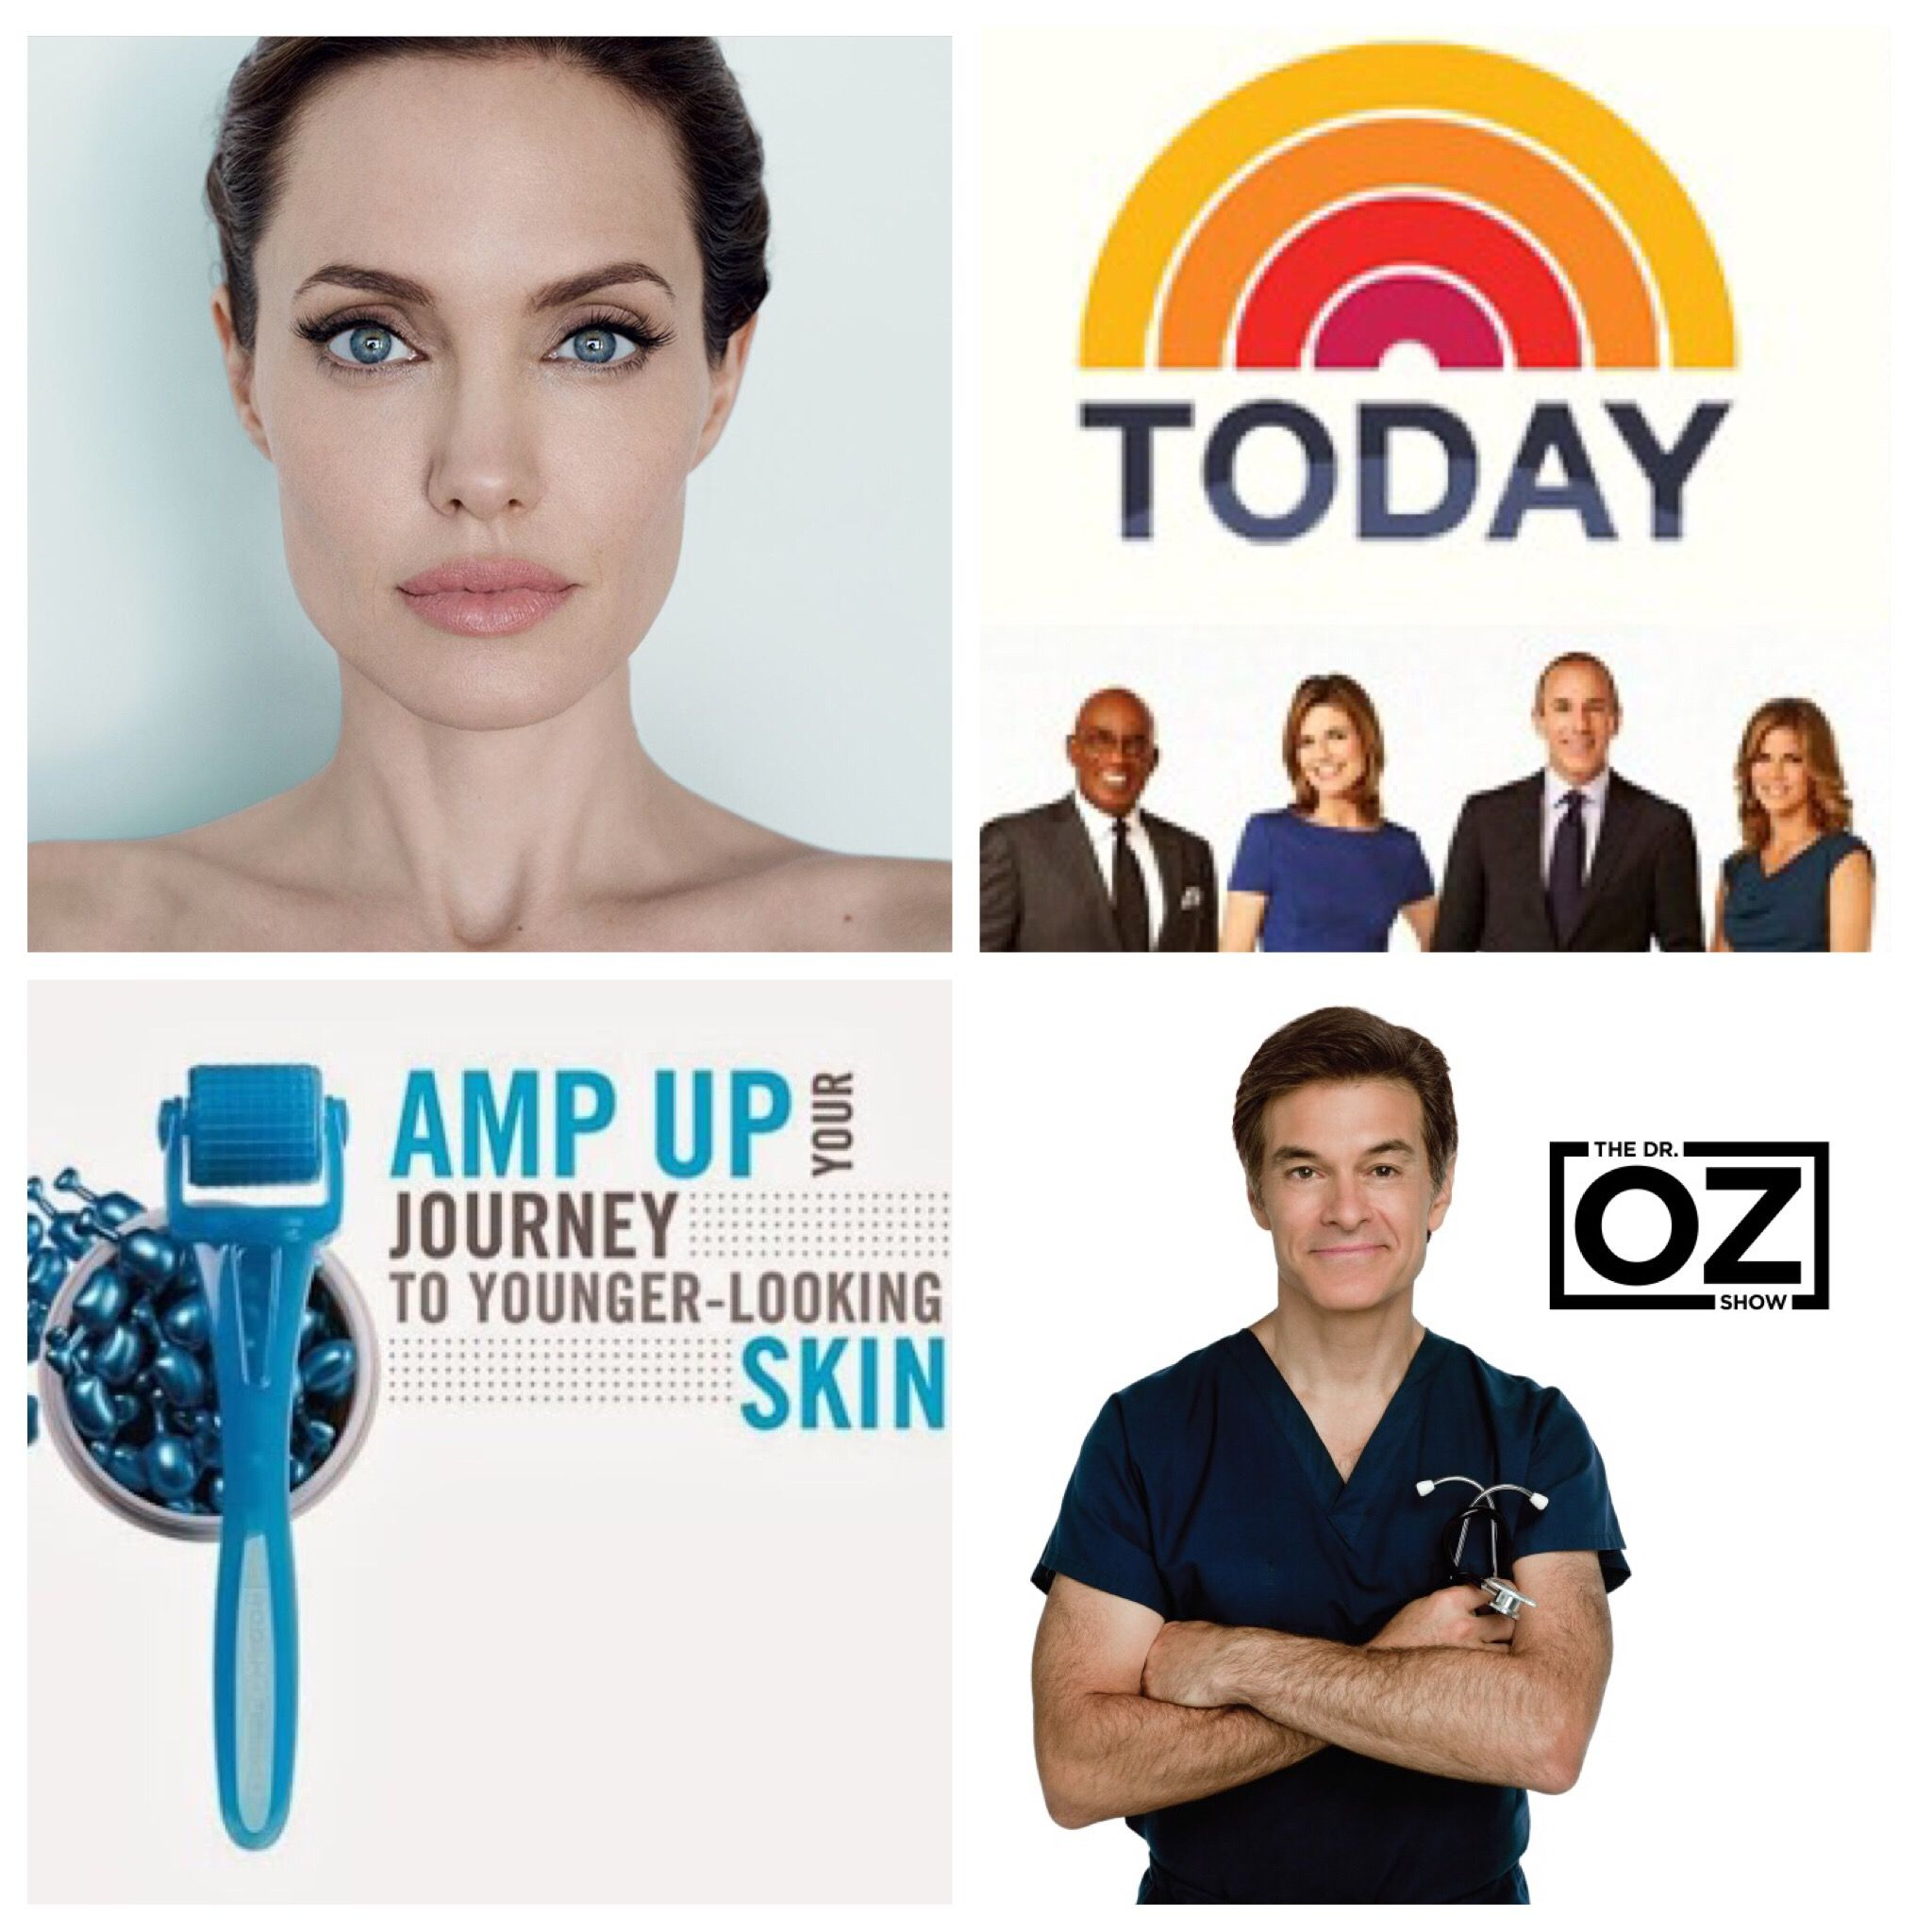 Angelina Jolie Uses A Roller To Keep Her Skin Looking Great The Today Show Says It S The Best Spent Minute I Skin Care Doctors Skin Care Anti Aging Skin Care